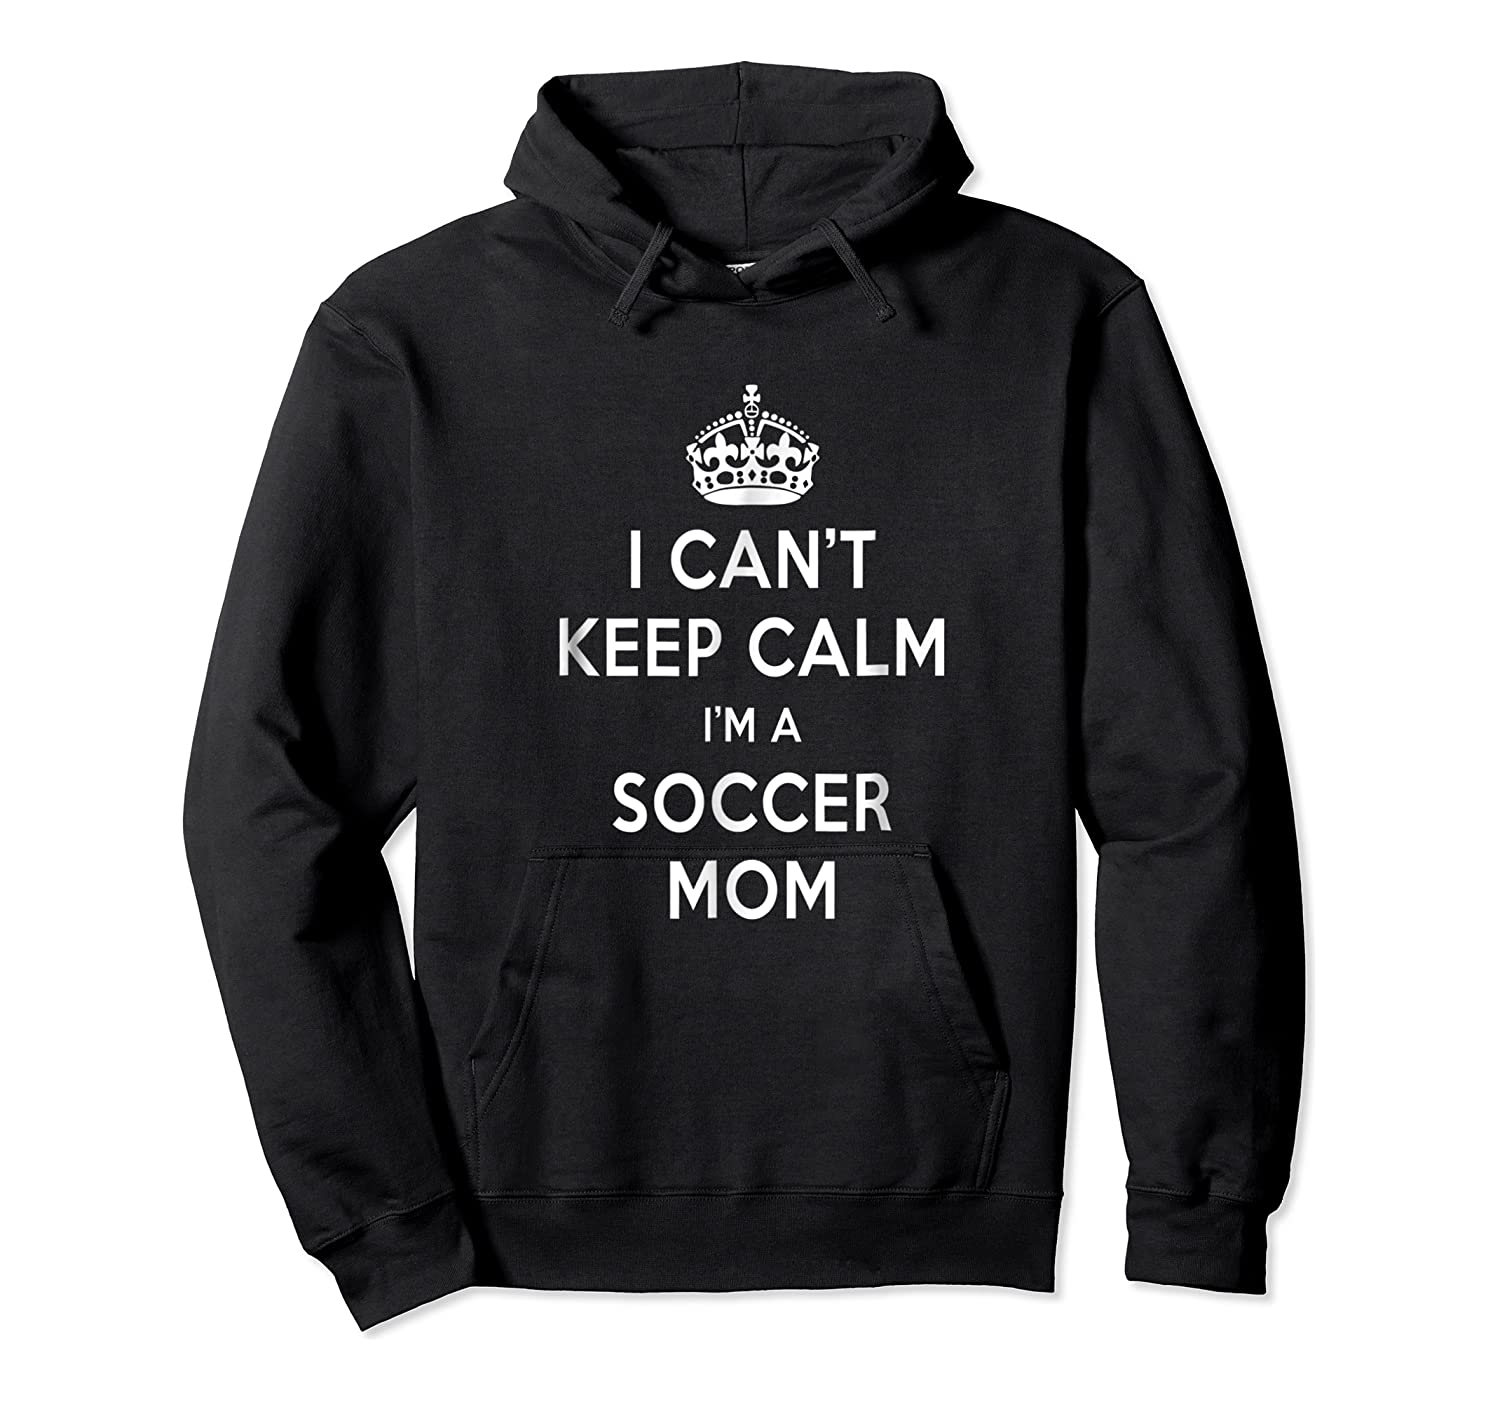 Can't Keep Calm 'm A Soccer Mom Shirts Unisex Pullover Hoodie